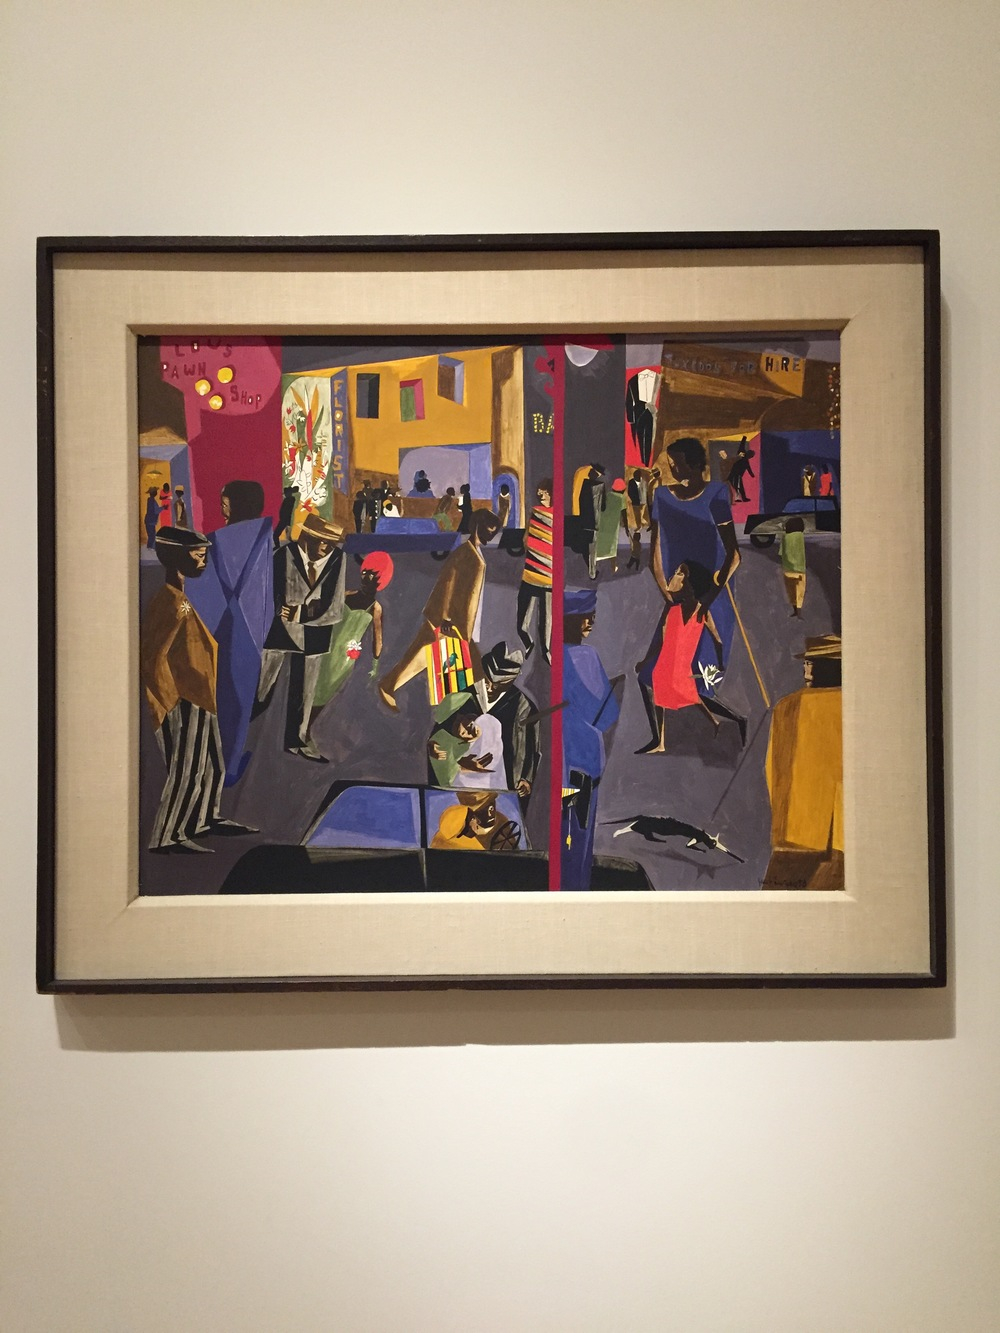 Fulton and Nostrand,   1958  Tempera on masonite  Jacob Lawrence (American, 1917-2000)